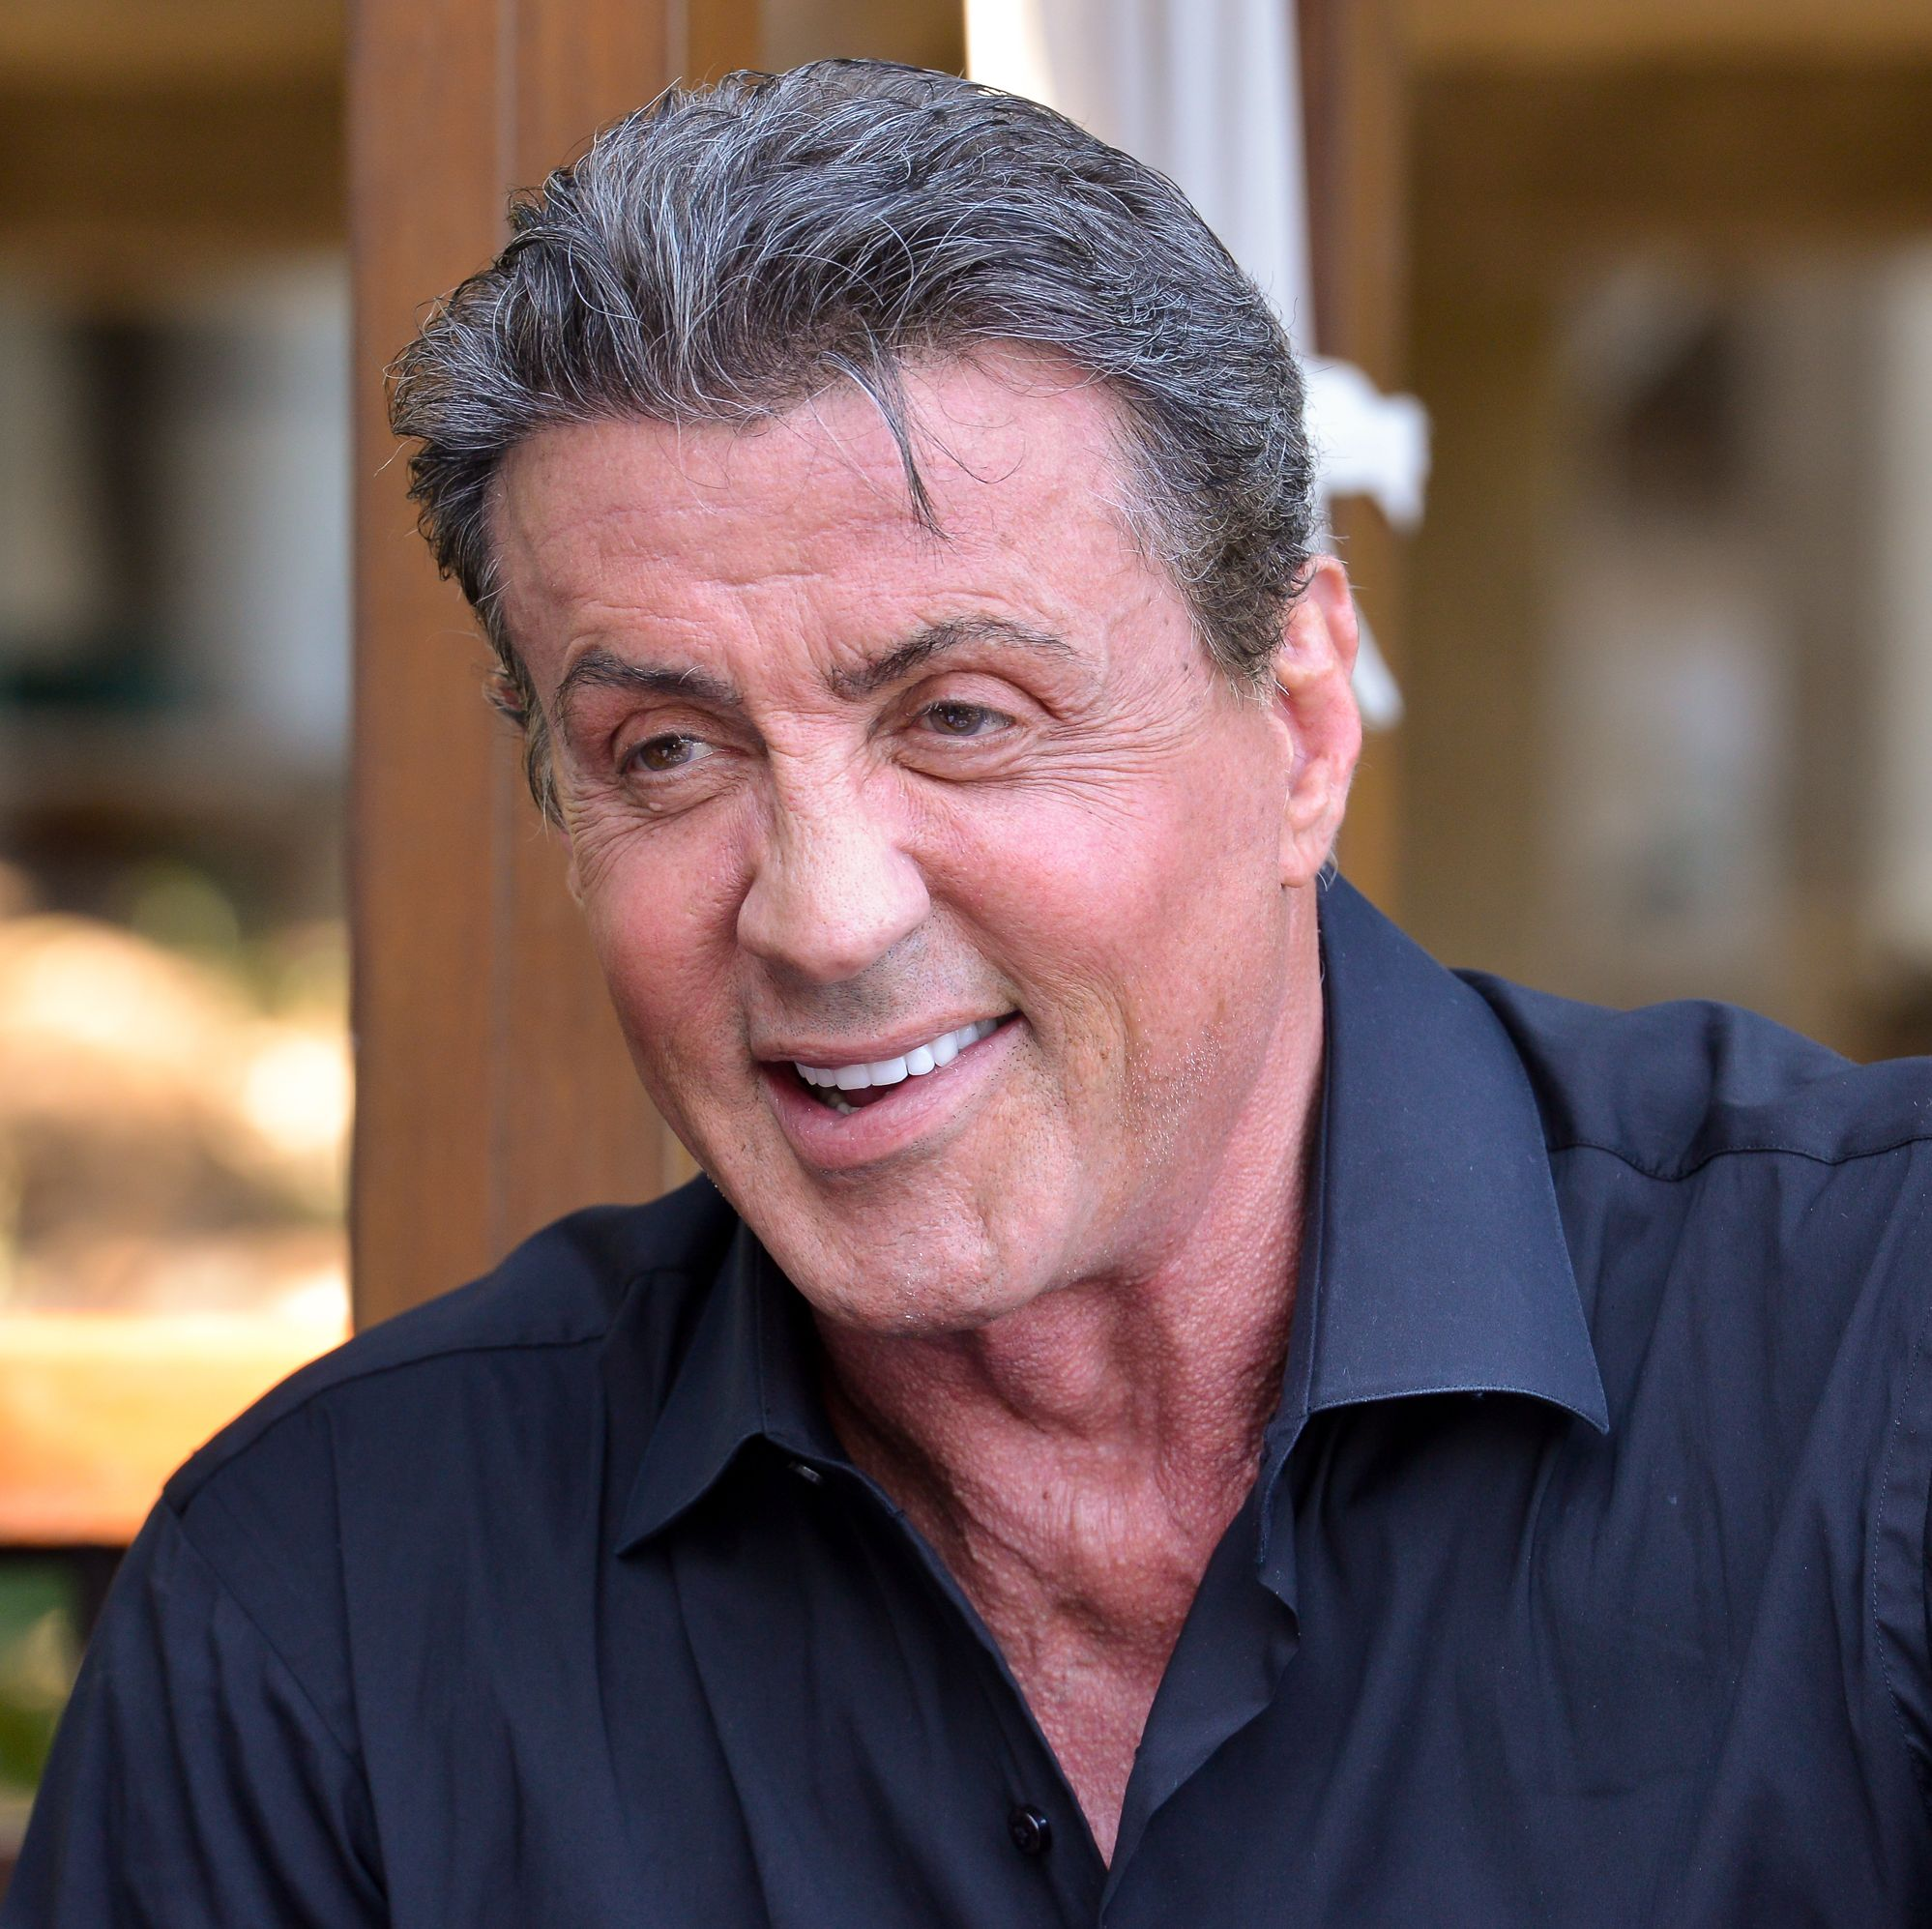 Sylvester Stallone Has a Few Words of Advice for UFC Champion Conor McGregor